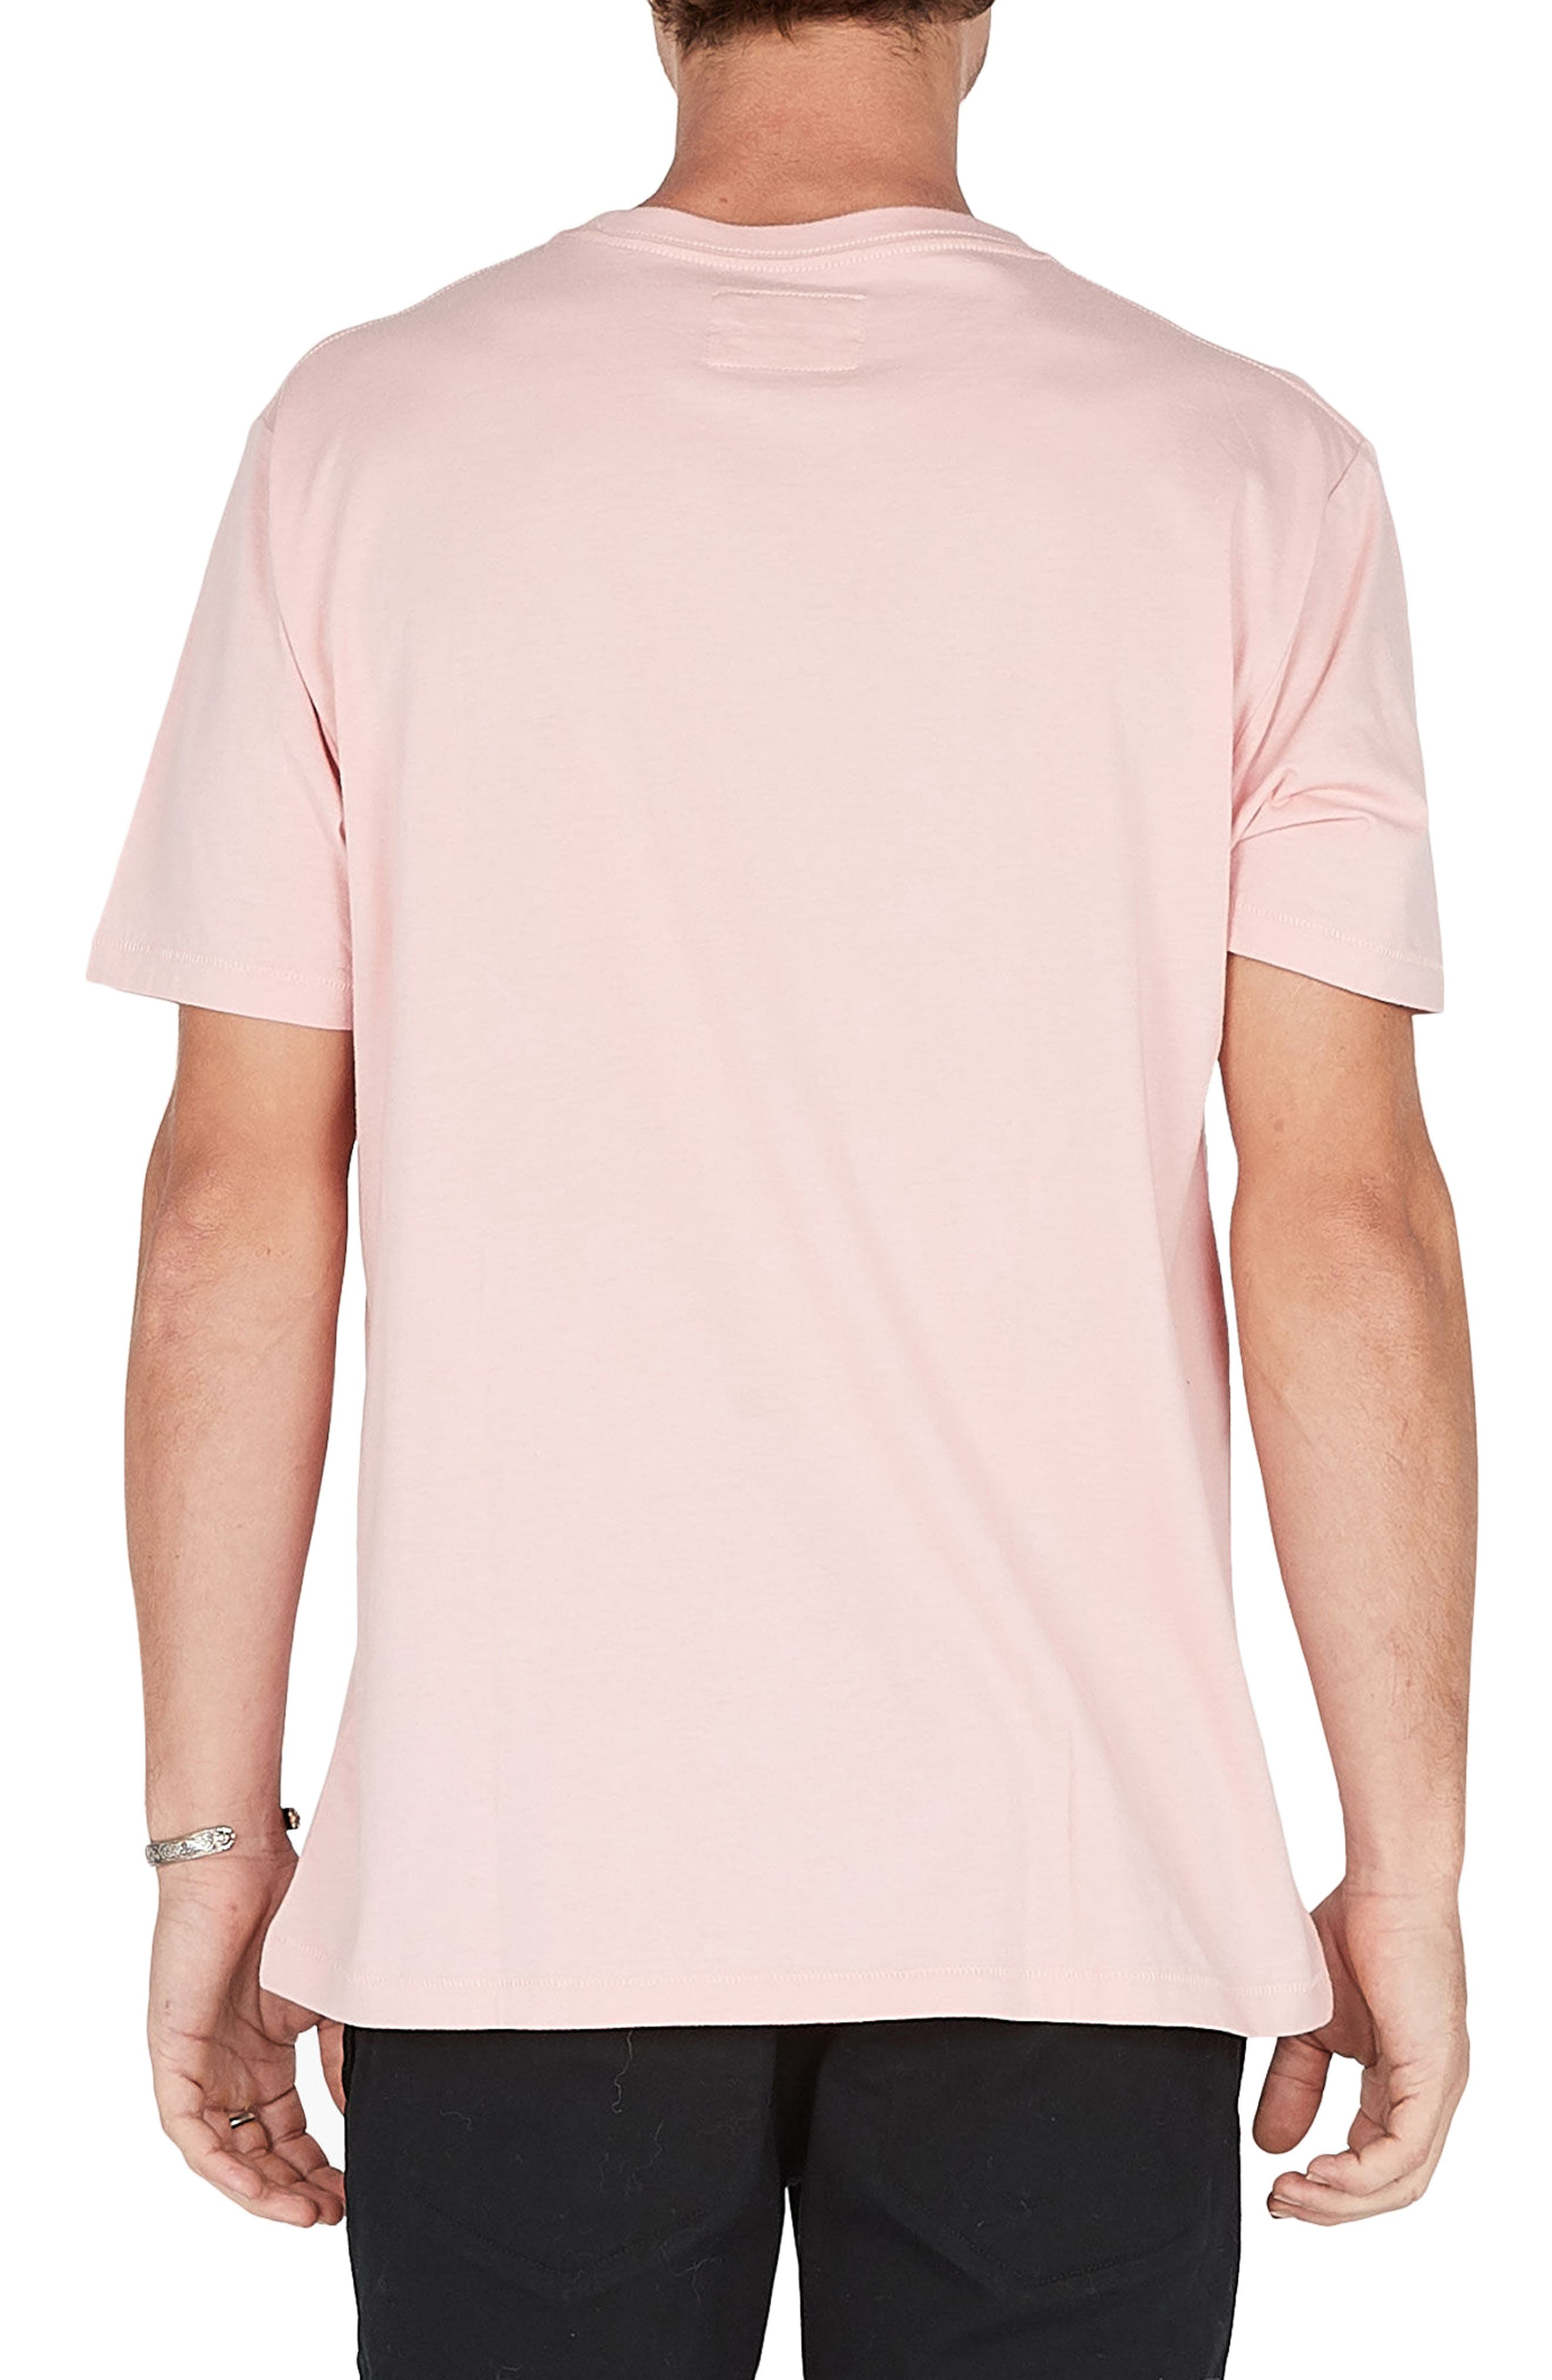 Embroidered Cools Club T-Shirt,                             Alternate thumbnail 2, color,                             680